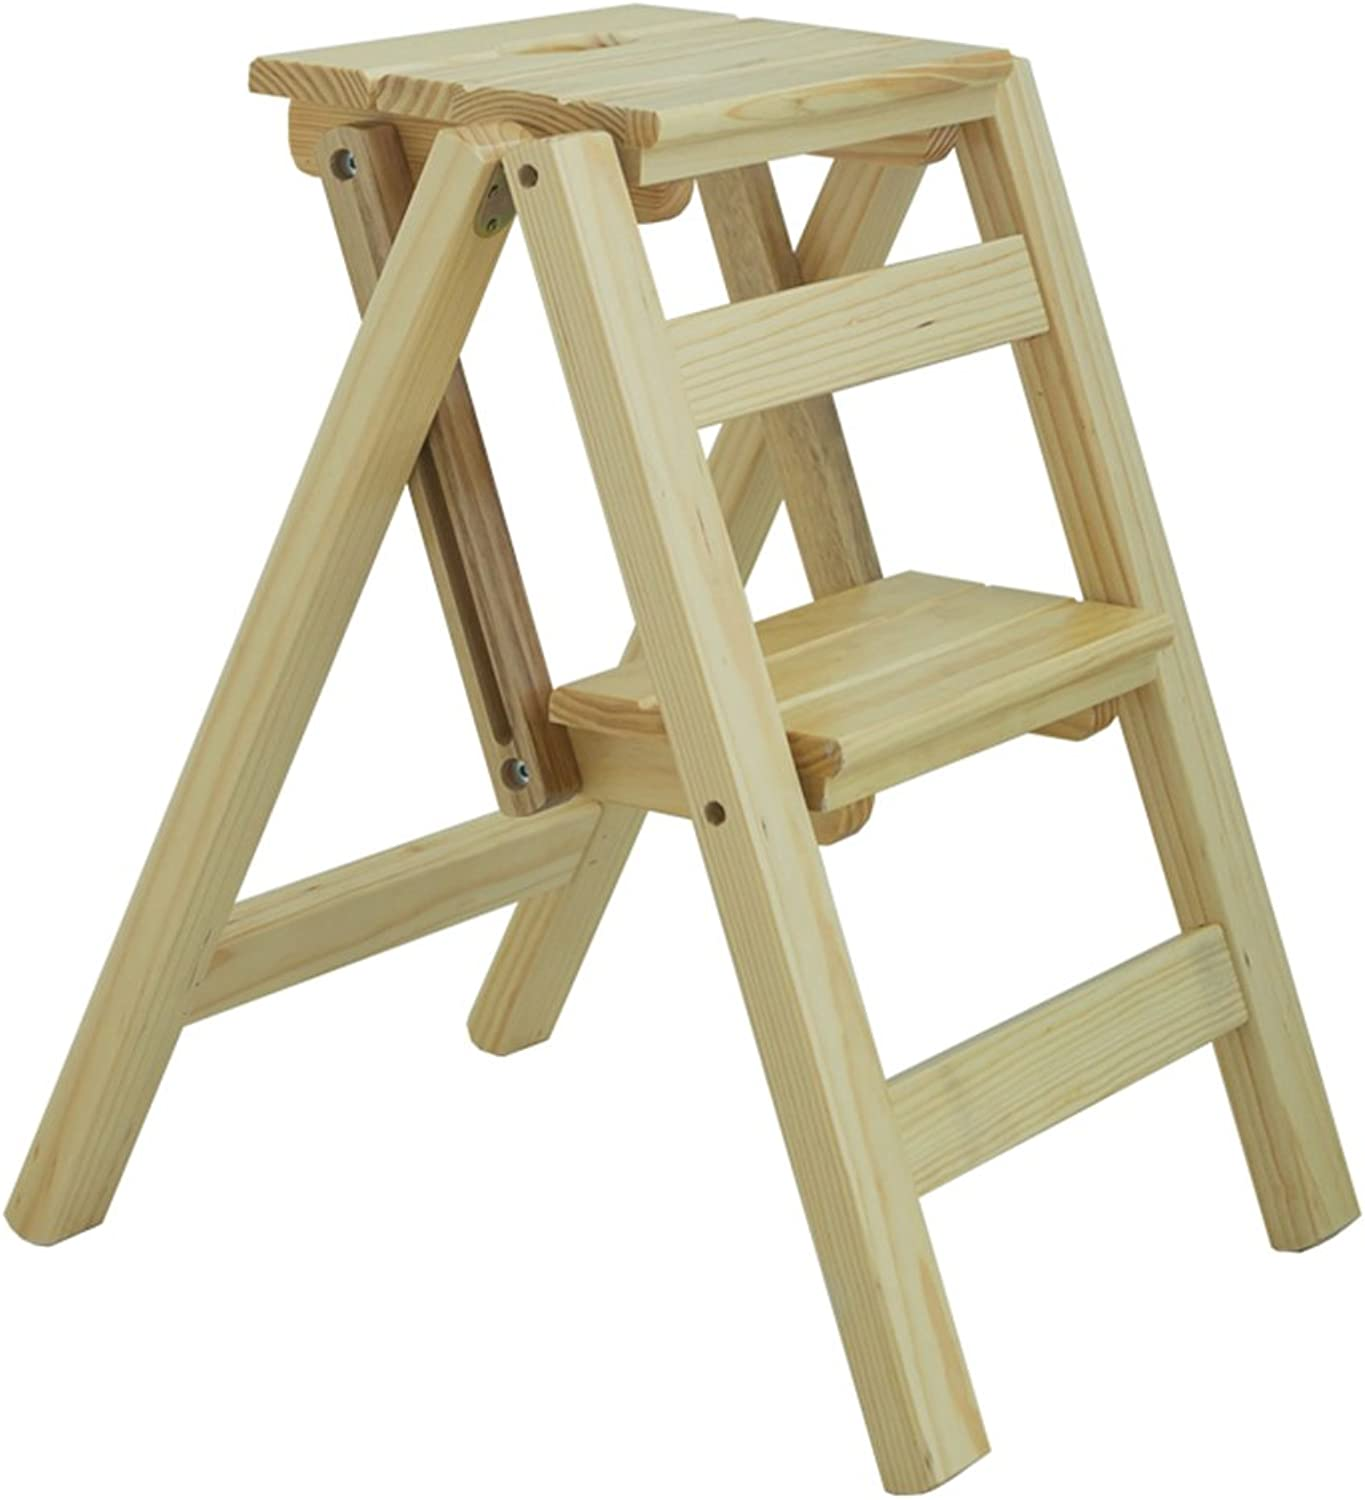 ZPWSNH Wooden 2-Story Step Stool Folding Ladder Multi-Function Step Stool Indoor Ladder Ladder Double Use Small Ladder Home Staircase Stool 38x46x50cm Step Stool (color   Log color)